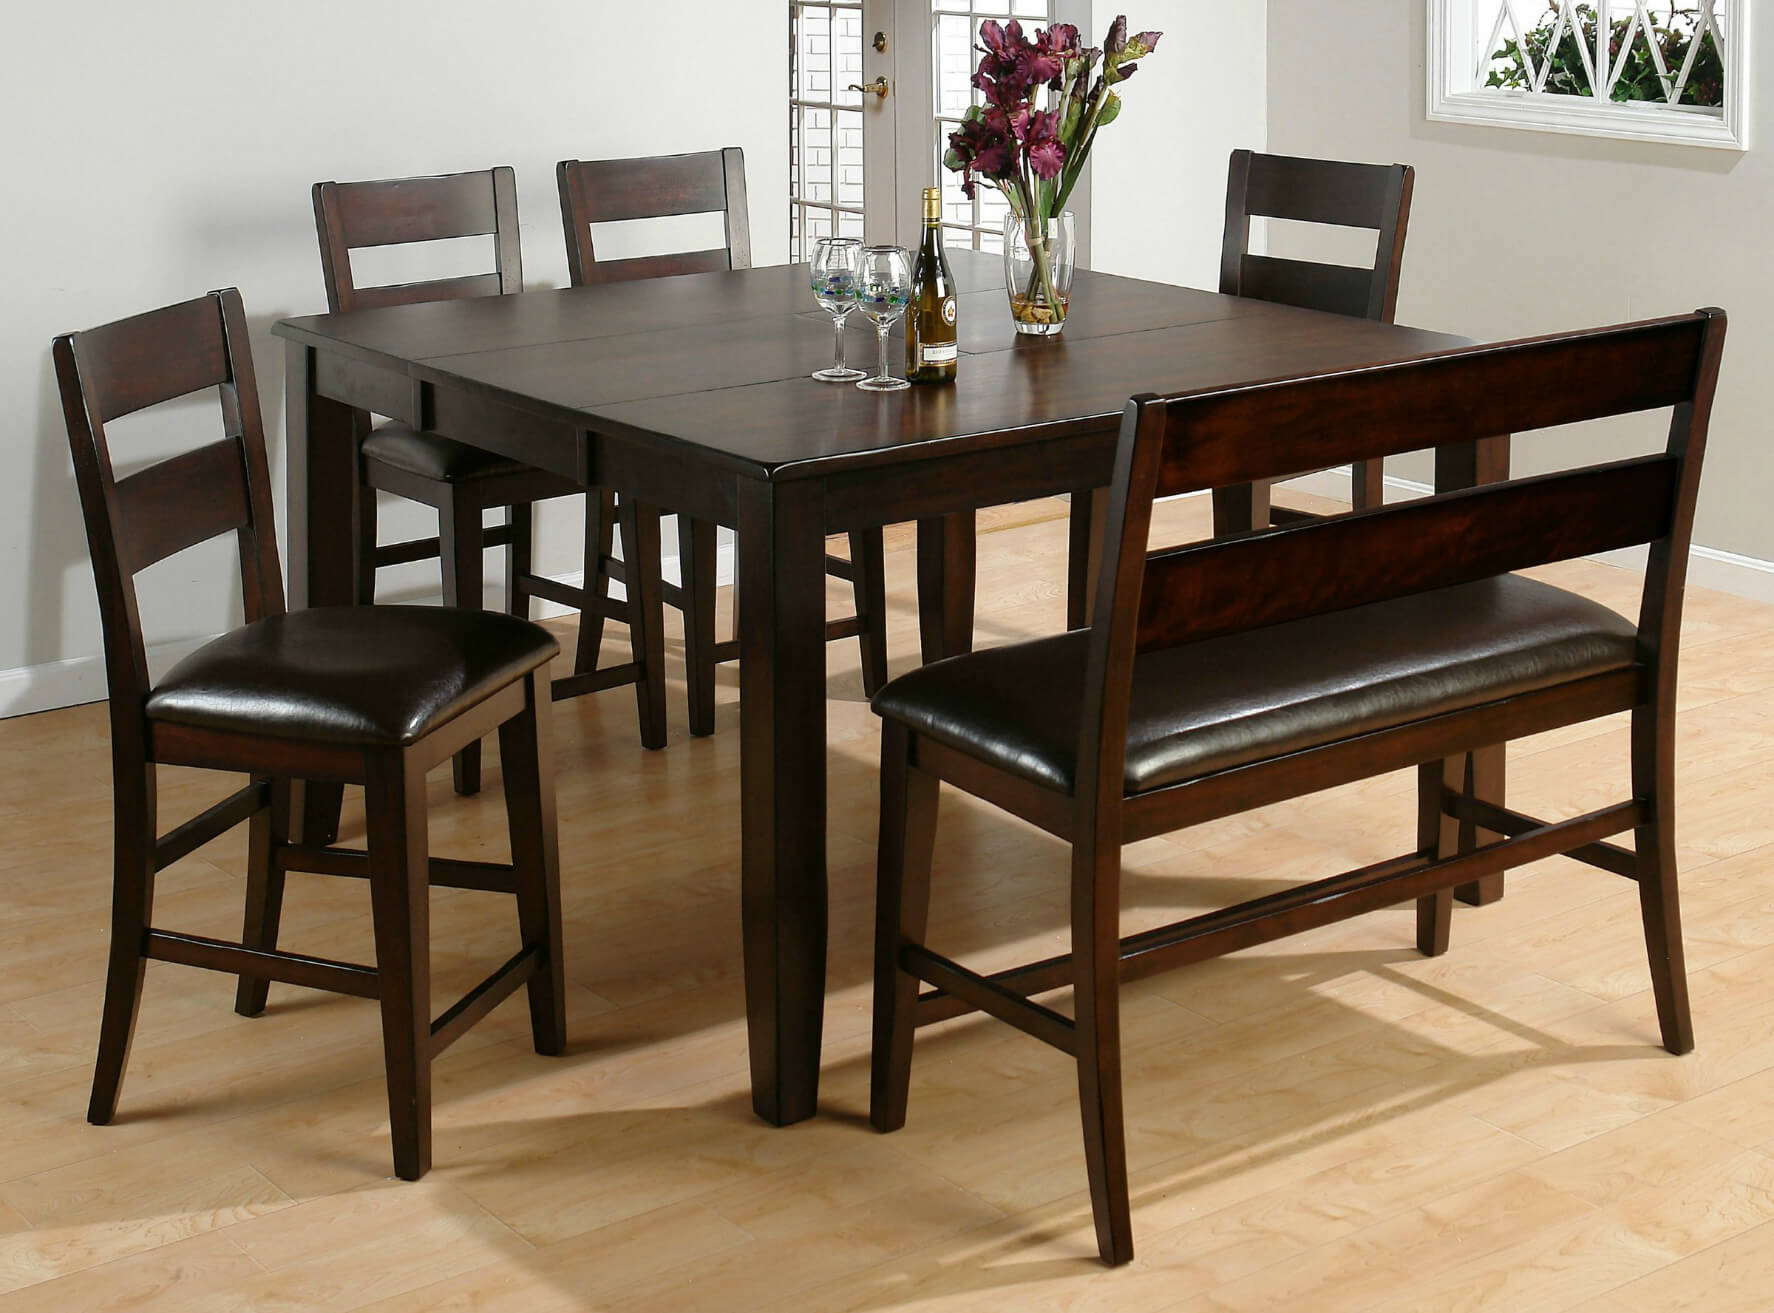 Dining room table with corner bench seat - Here S A Counter Height Square Dining Room Table With Bench Moreover The Bench Includes